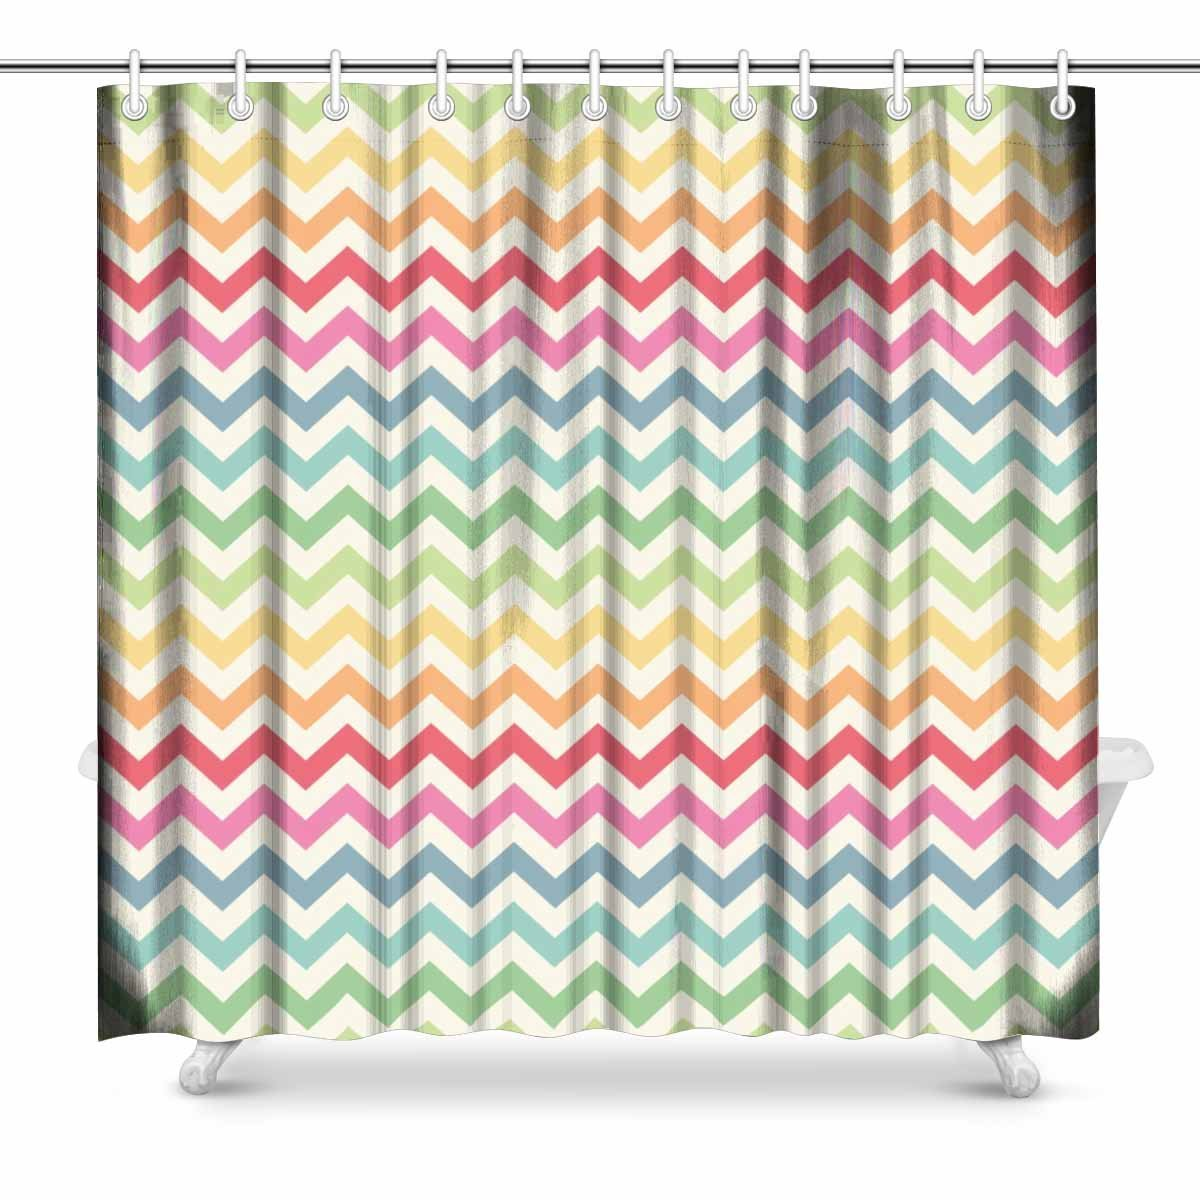 patterns sweet clouds c nursery shower merge color cute curtains print blue kids room curtain